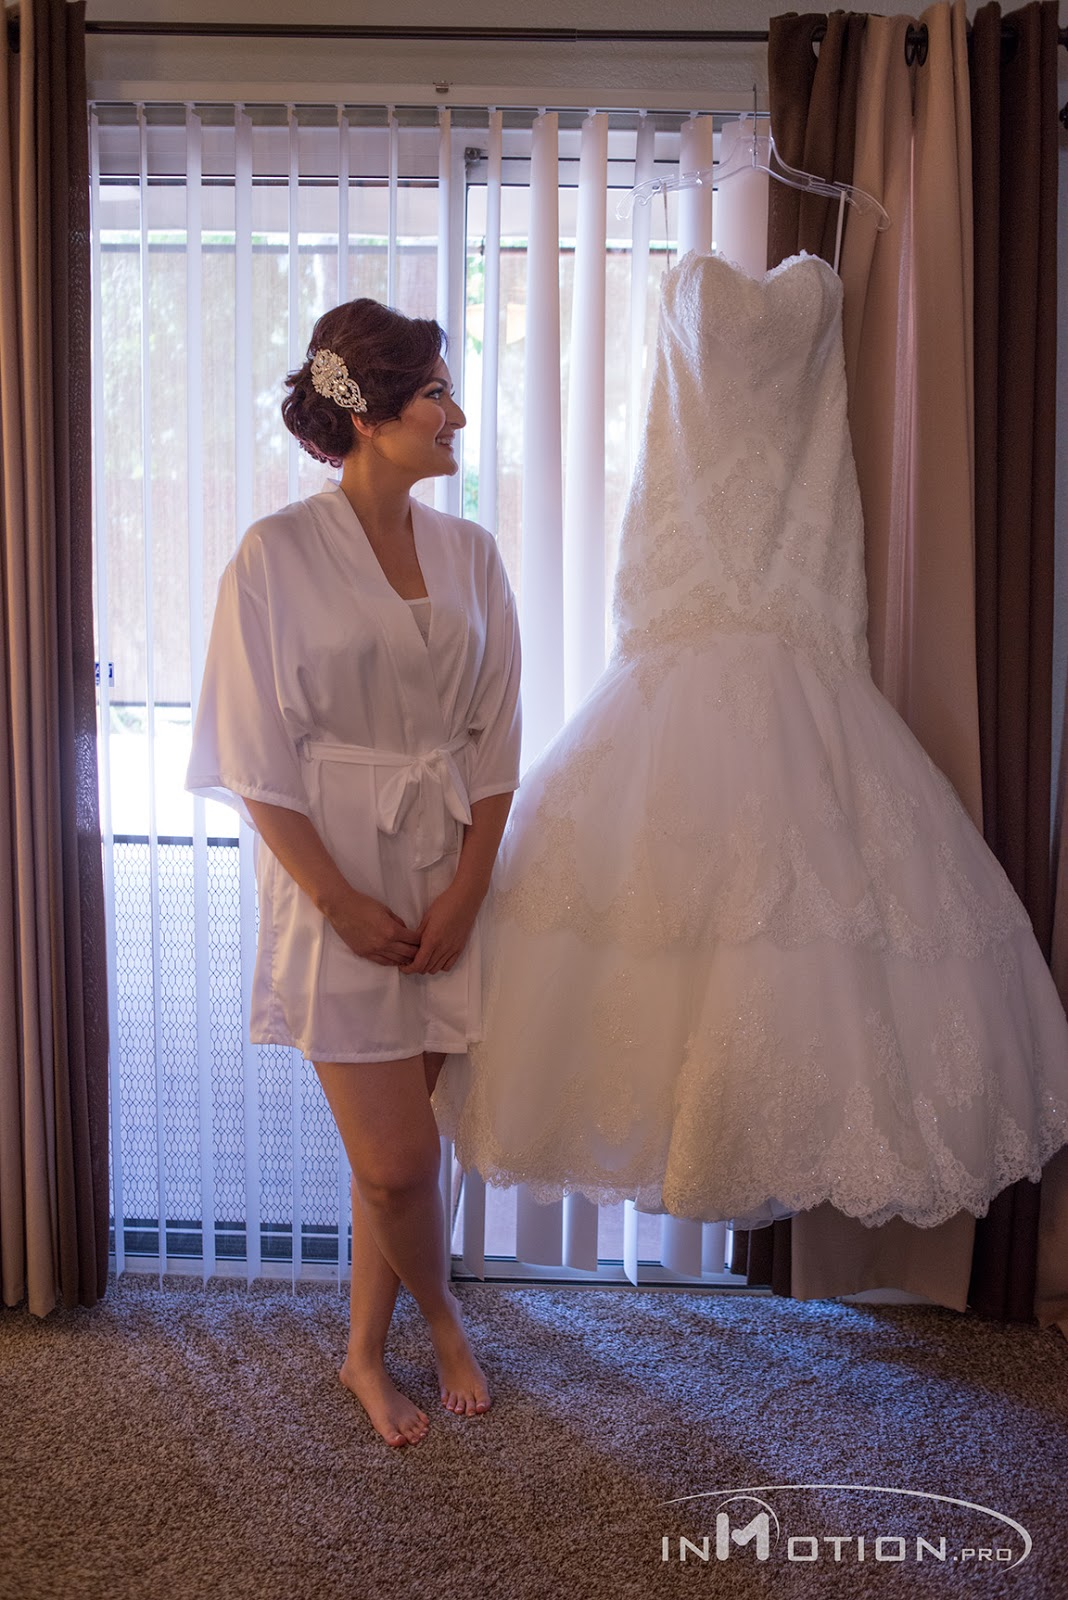 White Wedding Dress Bride Getting Ready Before The